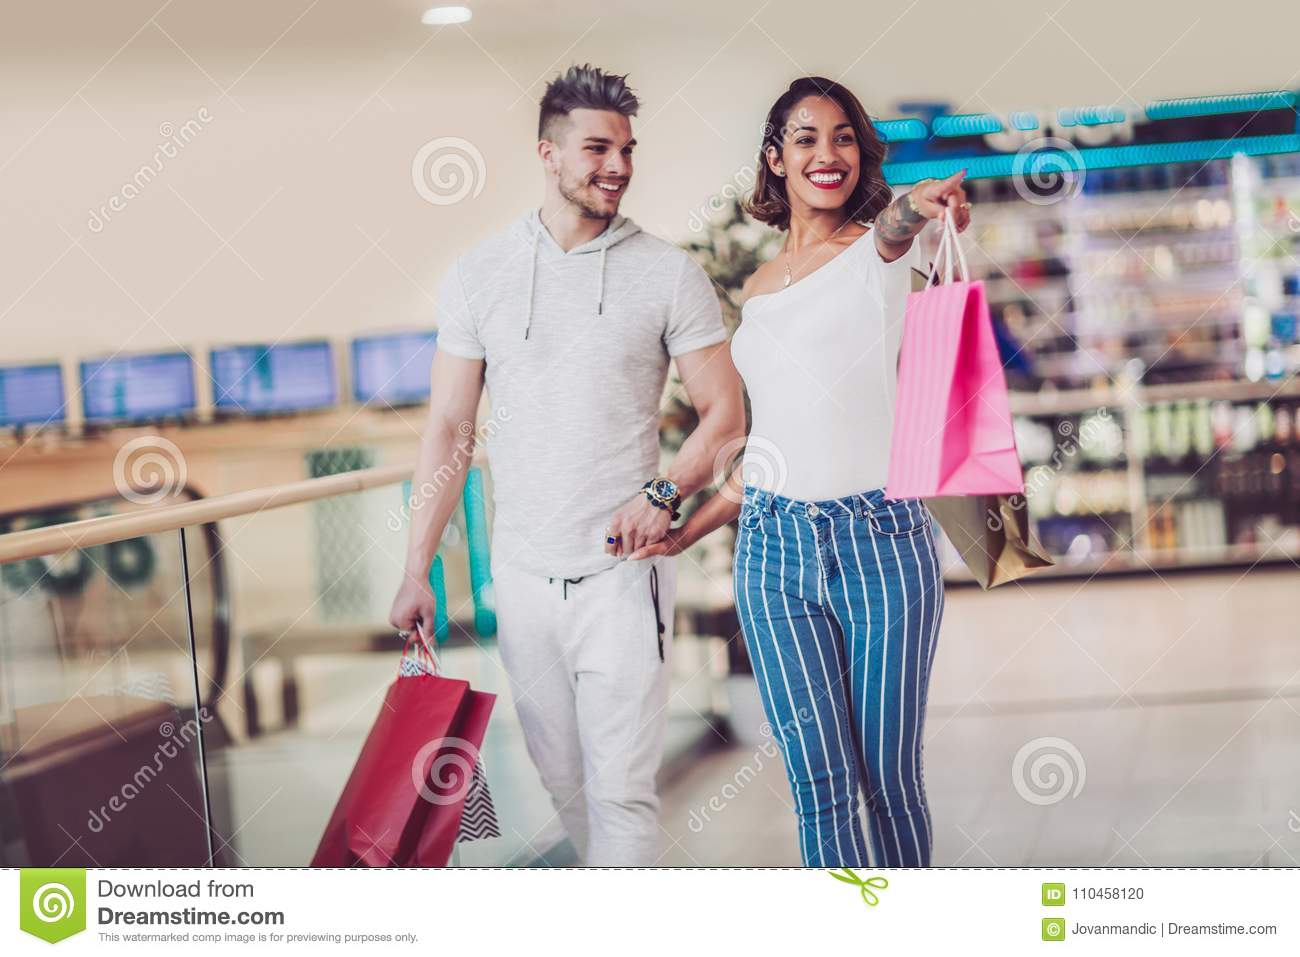 c2e13e7e6c Happy Young Couple With Shopping Bags Walking In Mall Stock Photo ...